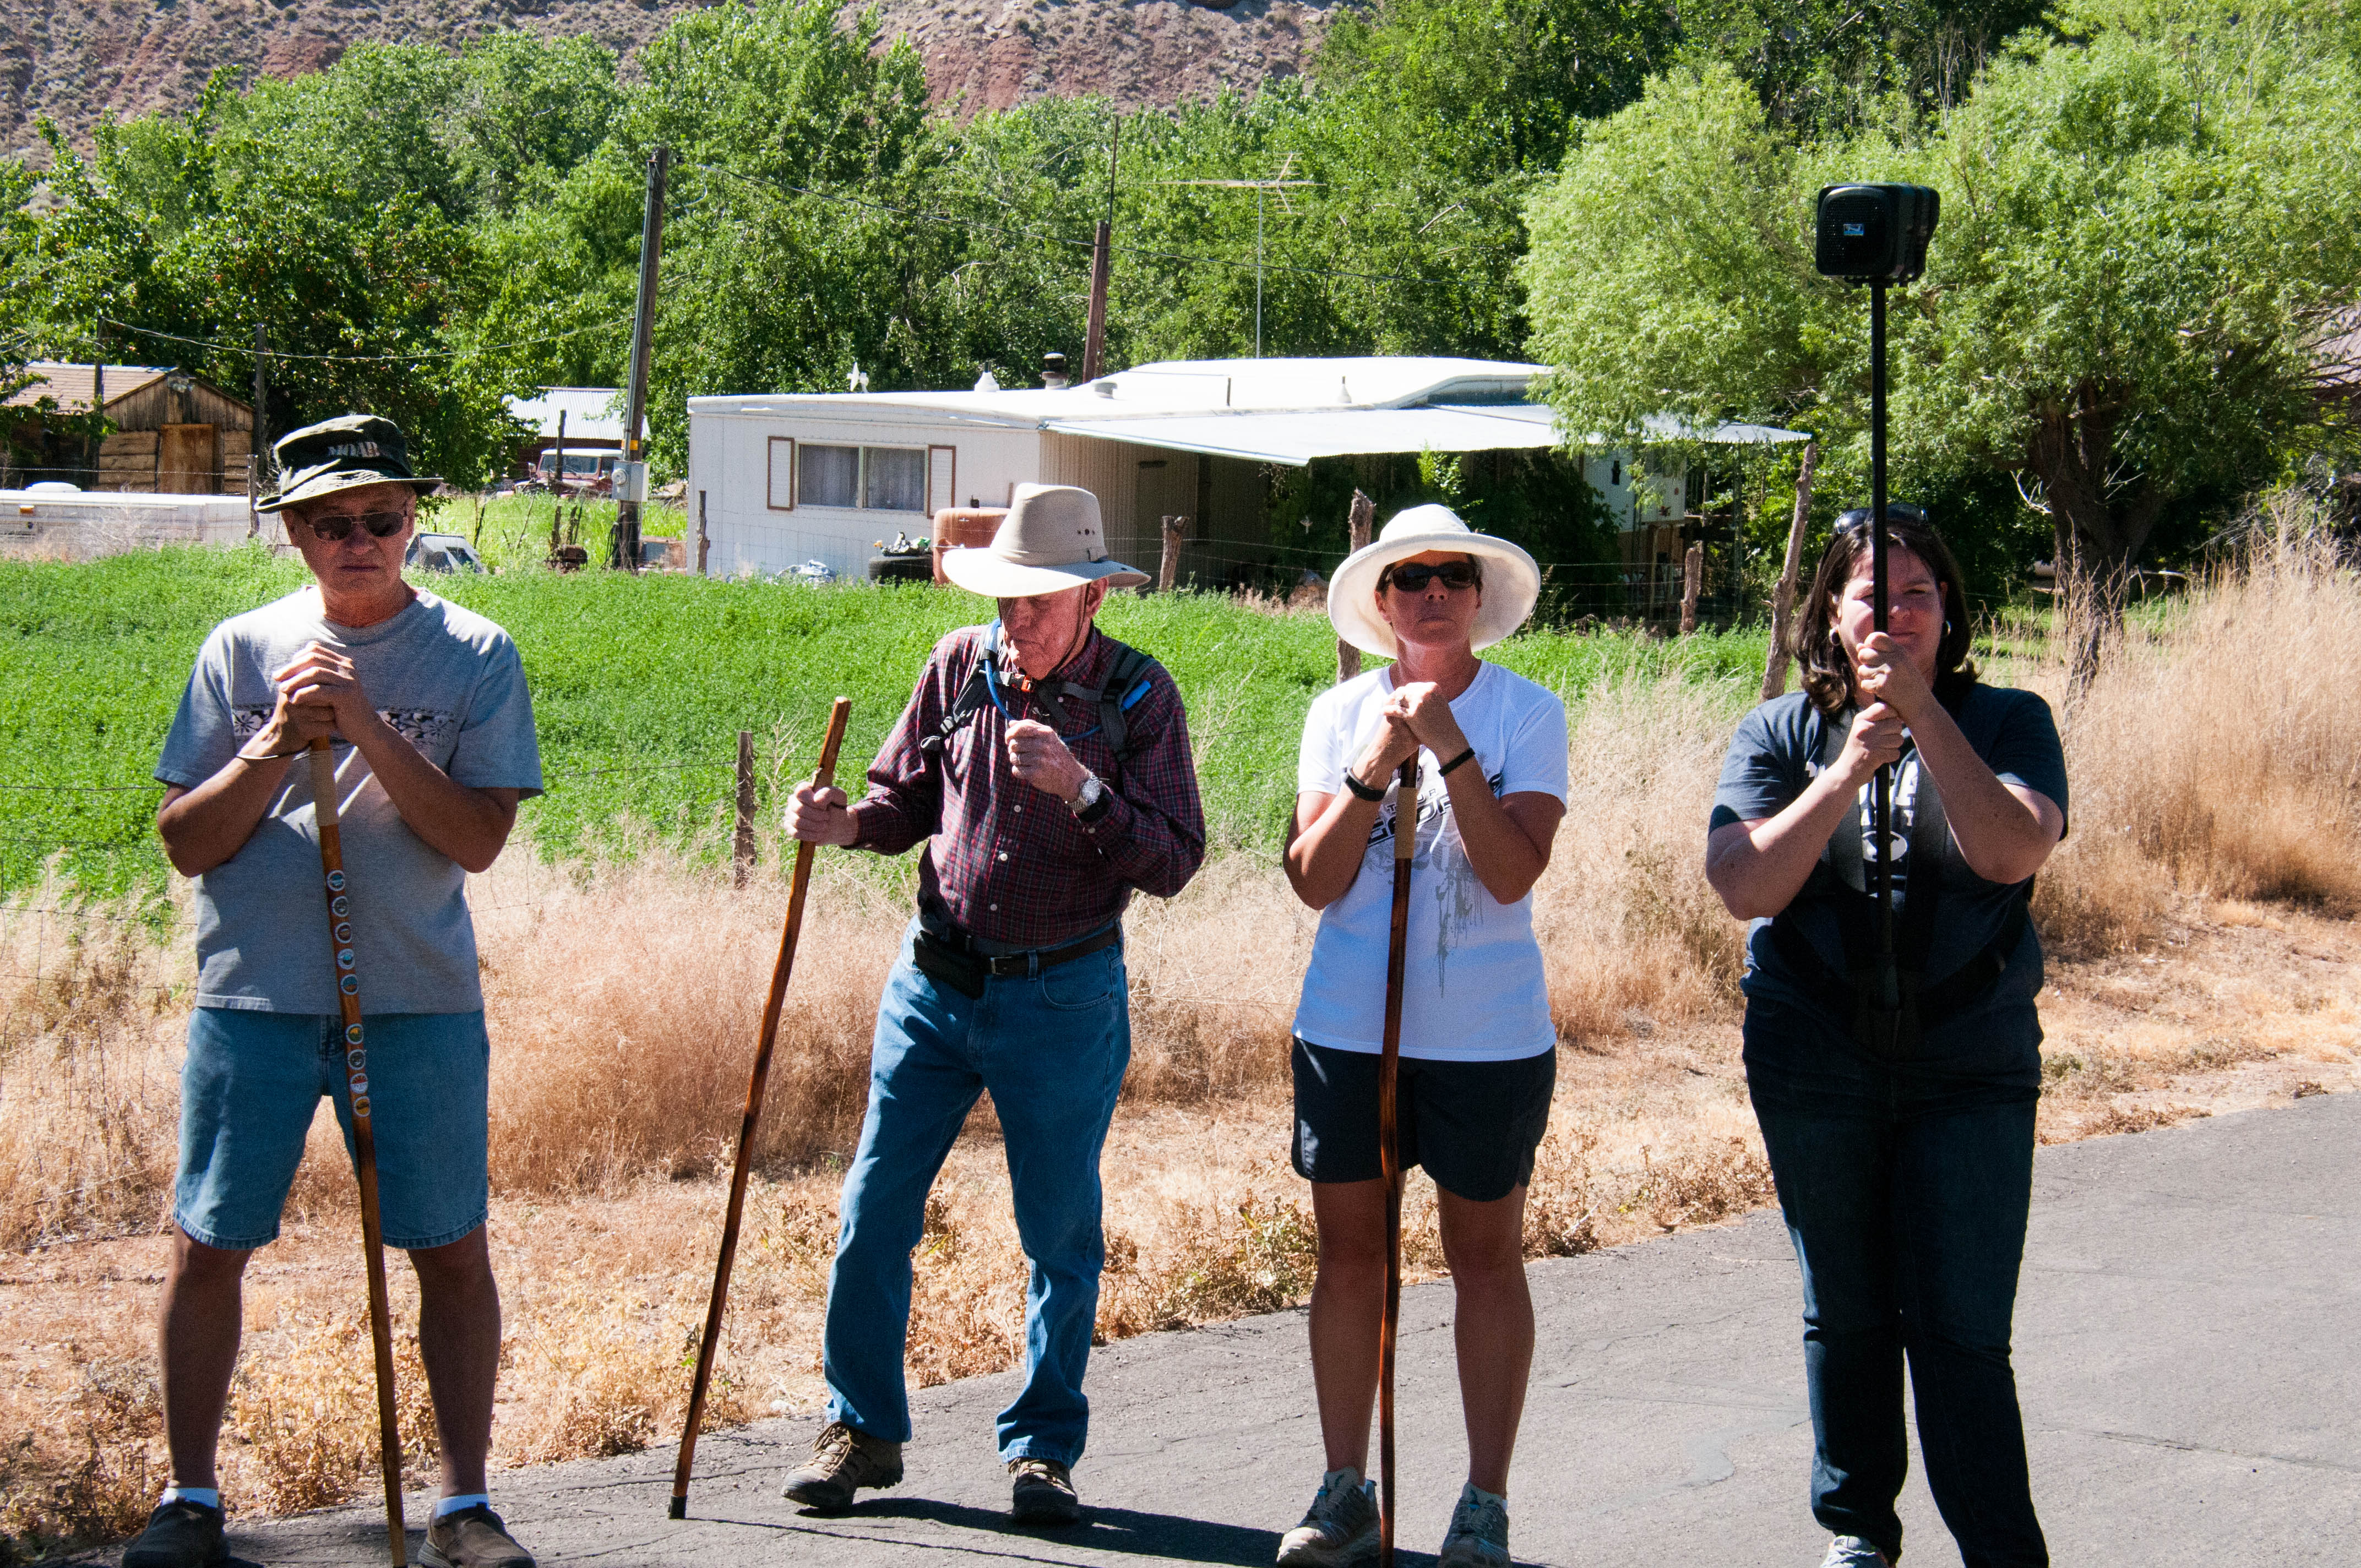 History buffs from left to right: Ken Hill, Ray and Dee Shankla, Heidi Lemke. Mayor's walkabout through Virgin Town, Utah, June 18, 2016, | Photo by Kathy Lillywhite, St. George News